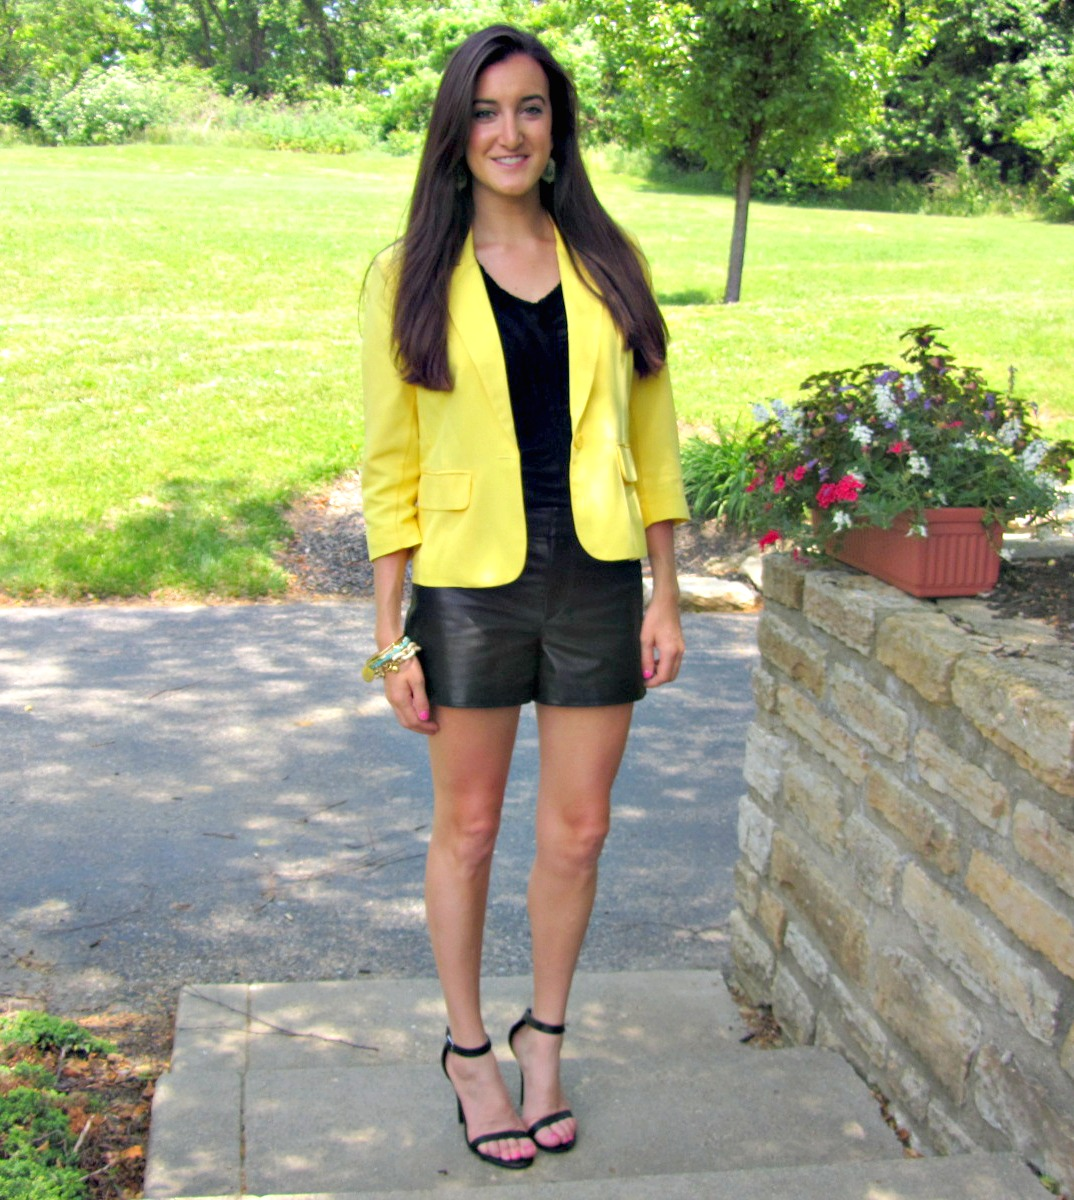 Anne Michelle Enzo Ankle Strap Heels, Gianni Bini Leather Shorts, Yellow Forever 21 Blazer